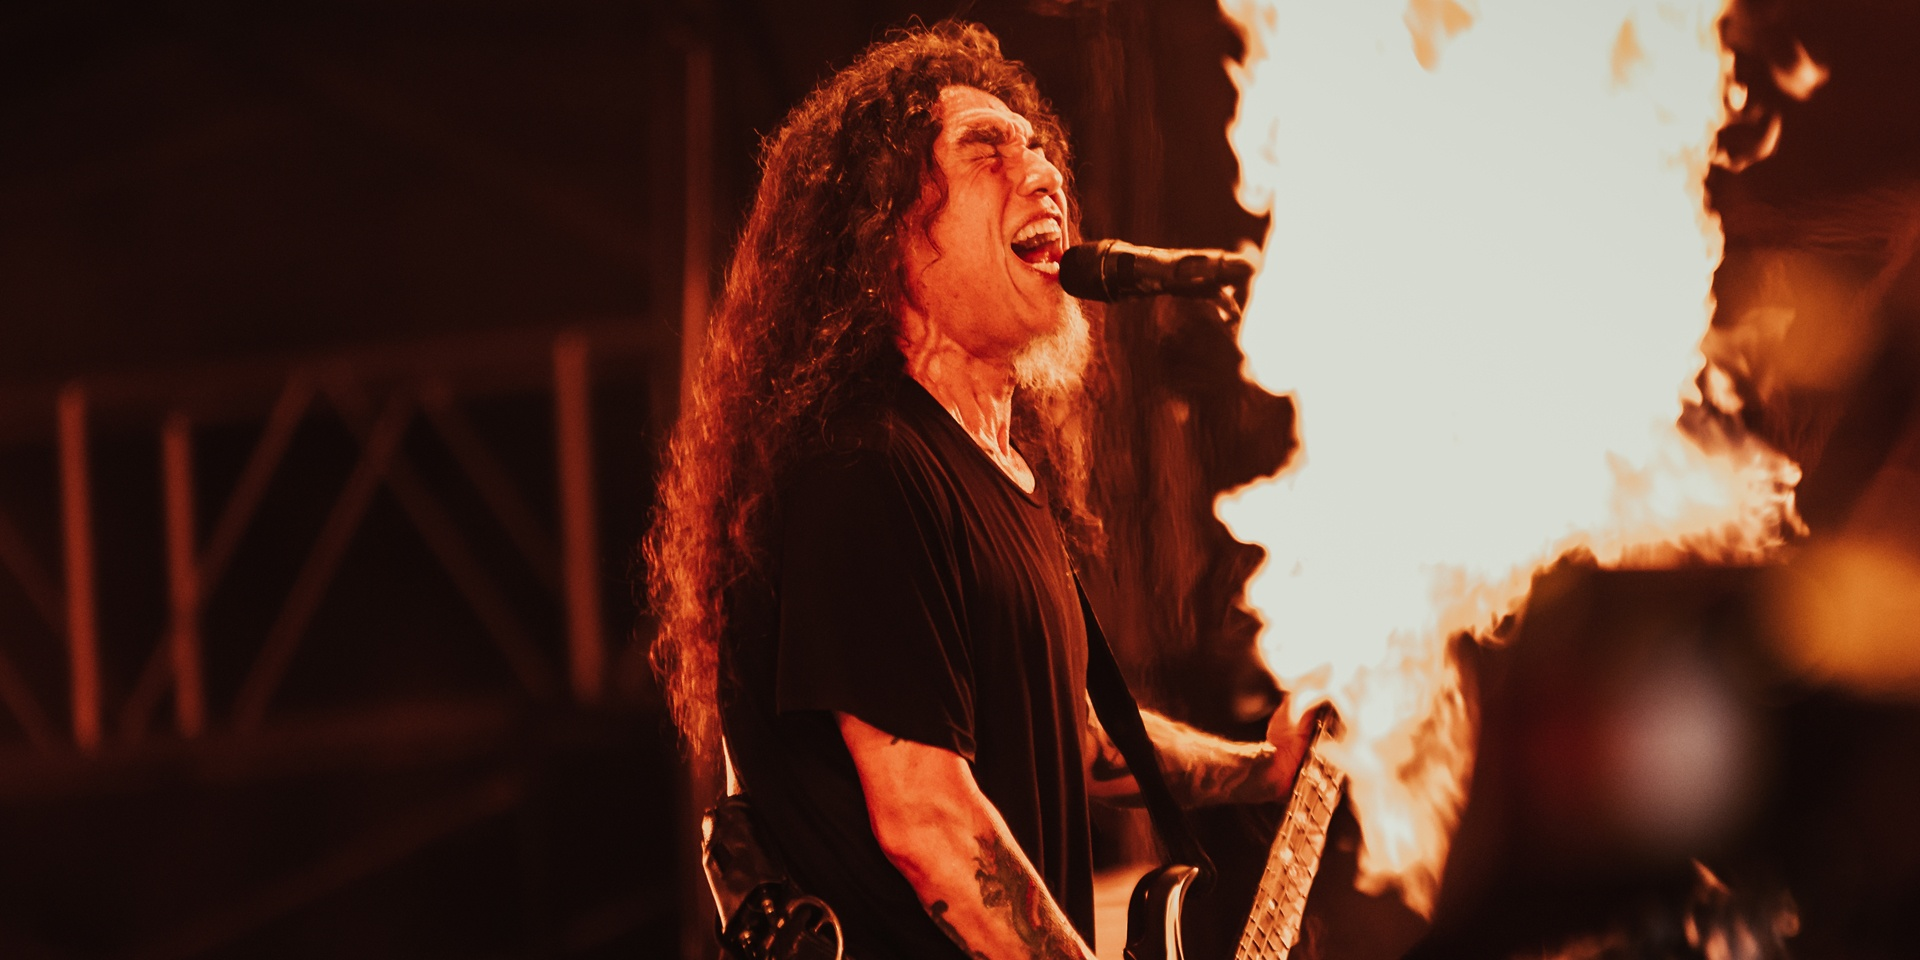 Slayer, Thy Art Is Murder, SikTh, Emmure, and more reign in glory at PULP SUMMER SLAM XIX – photo gallery